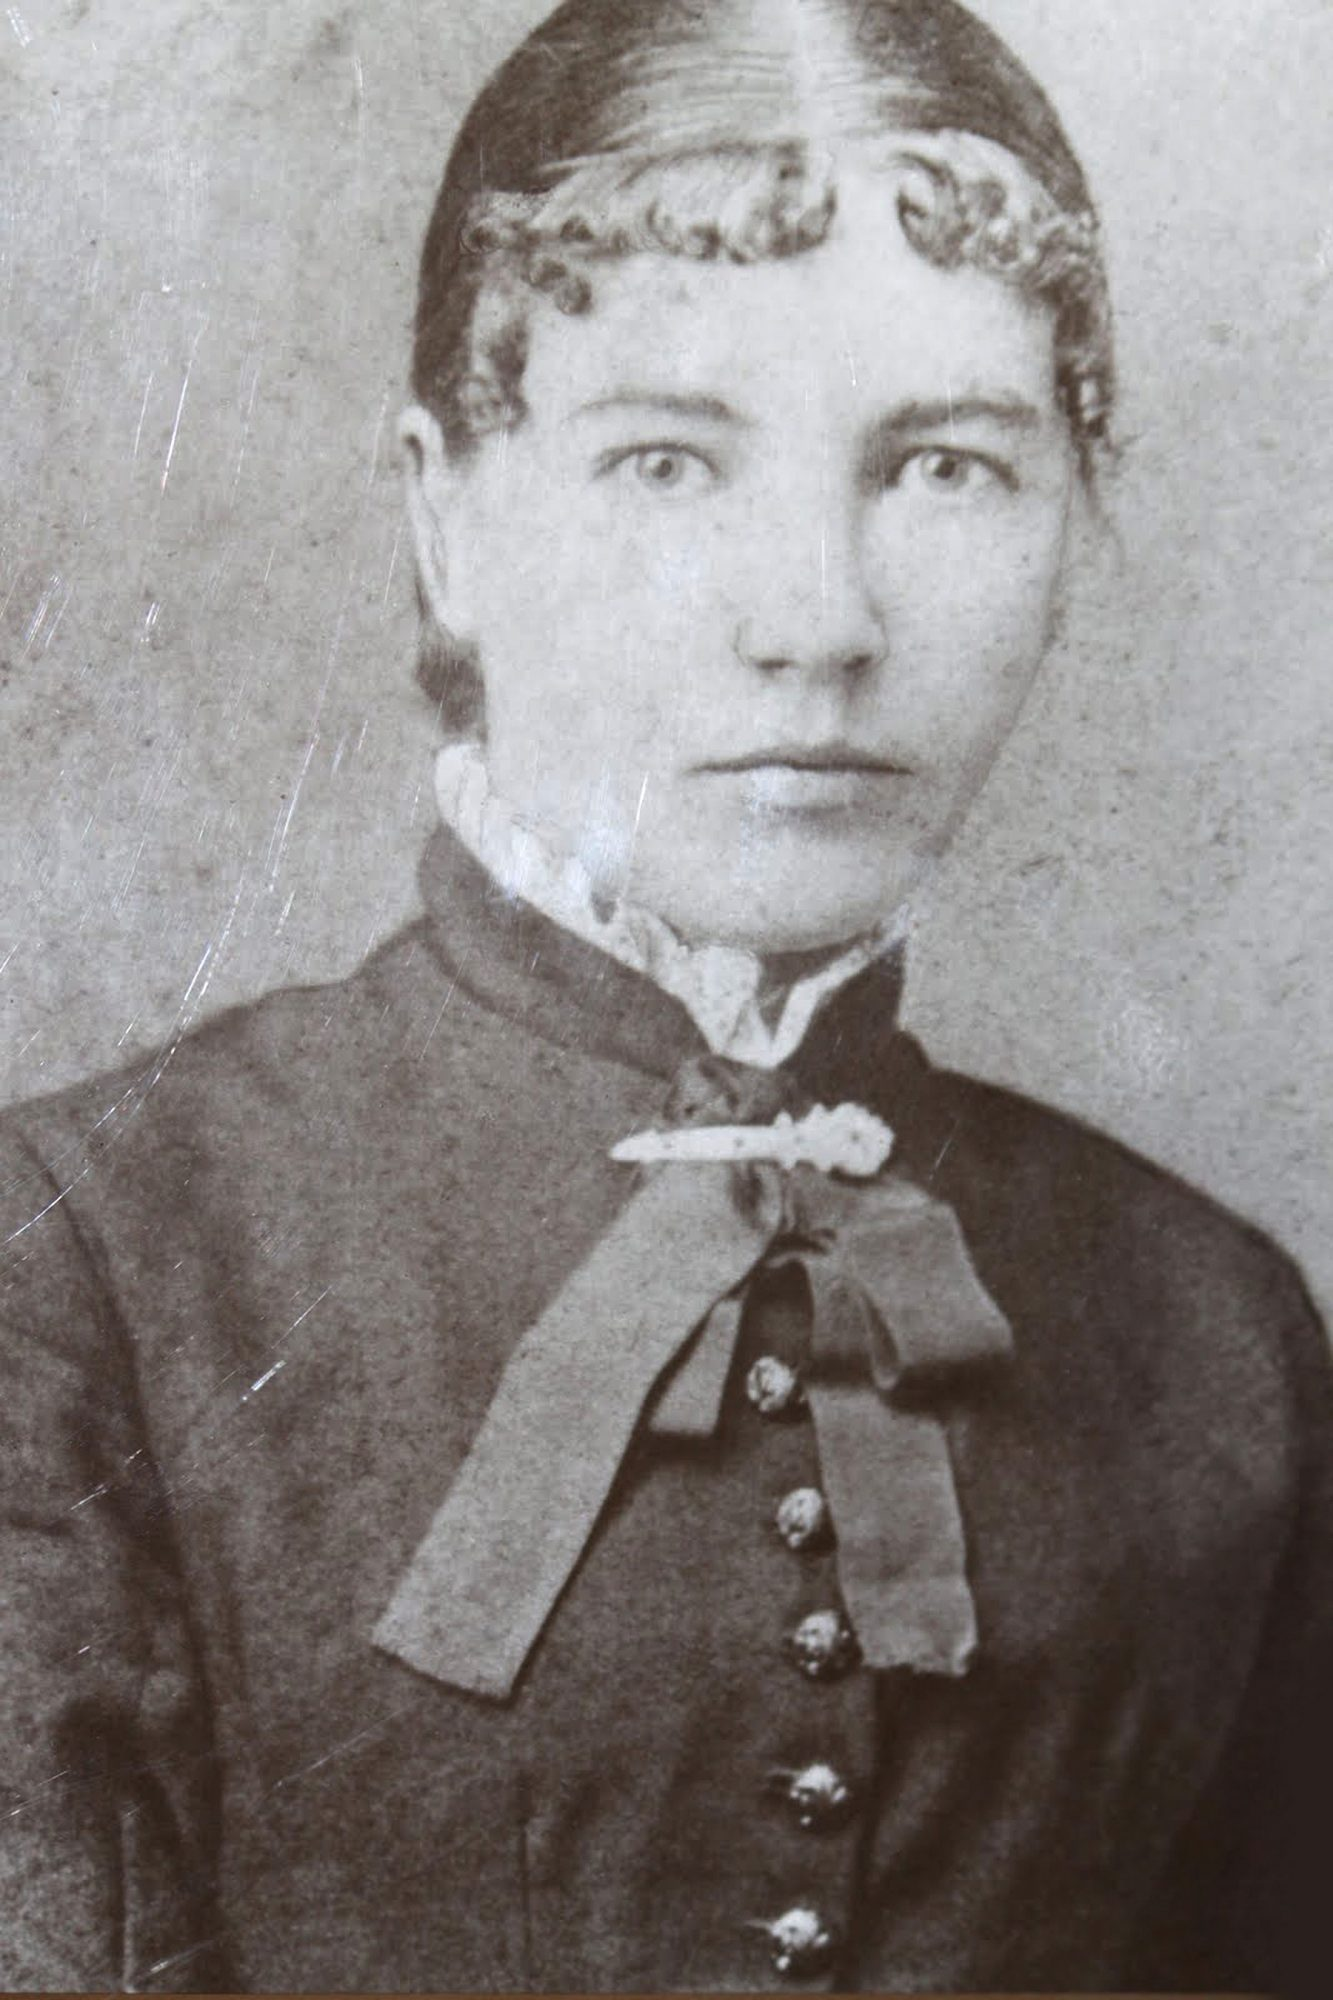 Happy birthday, Laura Ingalls Wilder! 15 things we learned from Little House on the Prairie